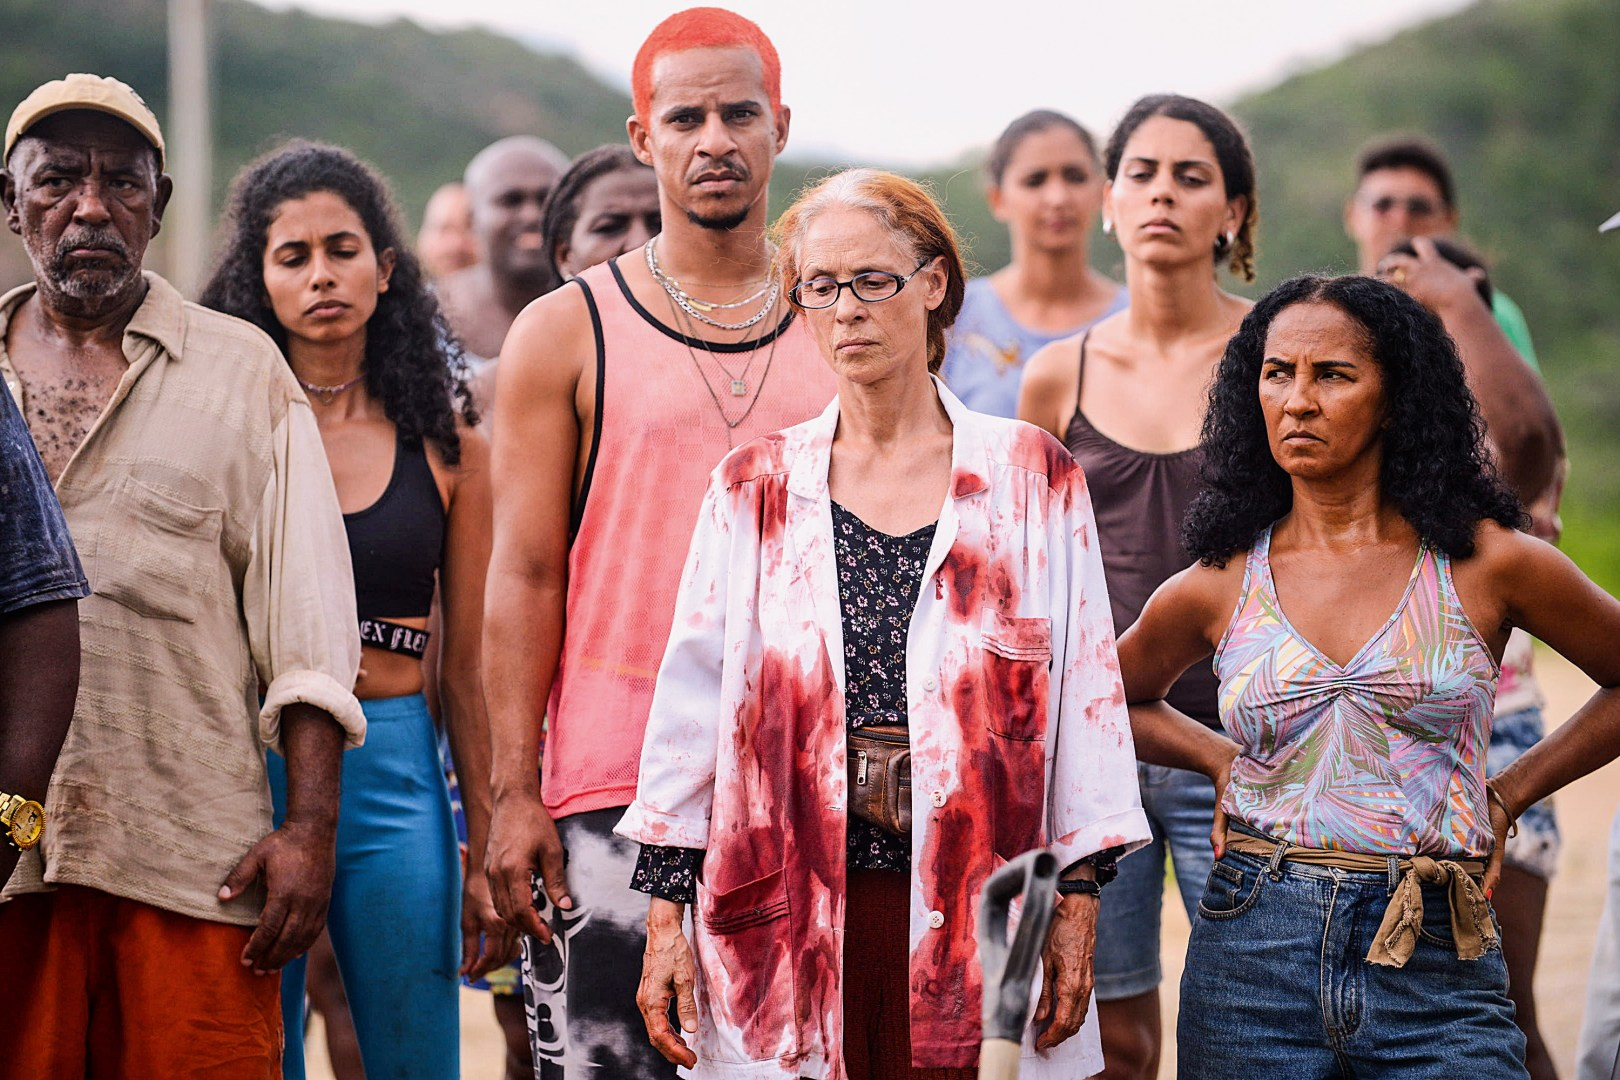 Featured image: Kleber Mendonça Filho & Juliano Dornelles' film BACURAU had been scheduled as one of the opening film choices at Garden Cinema.